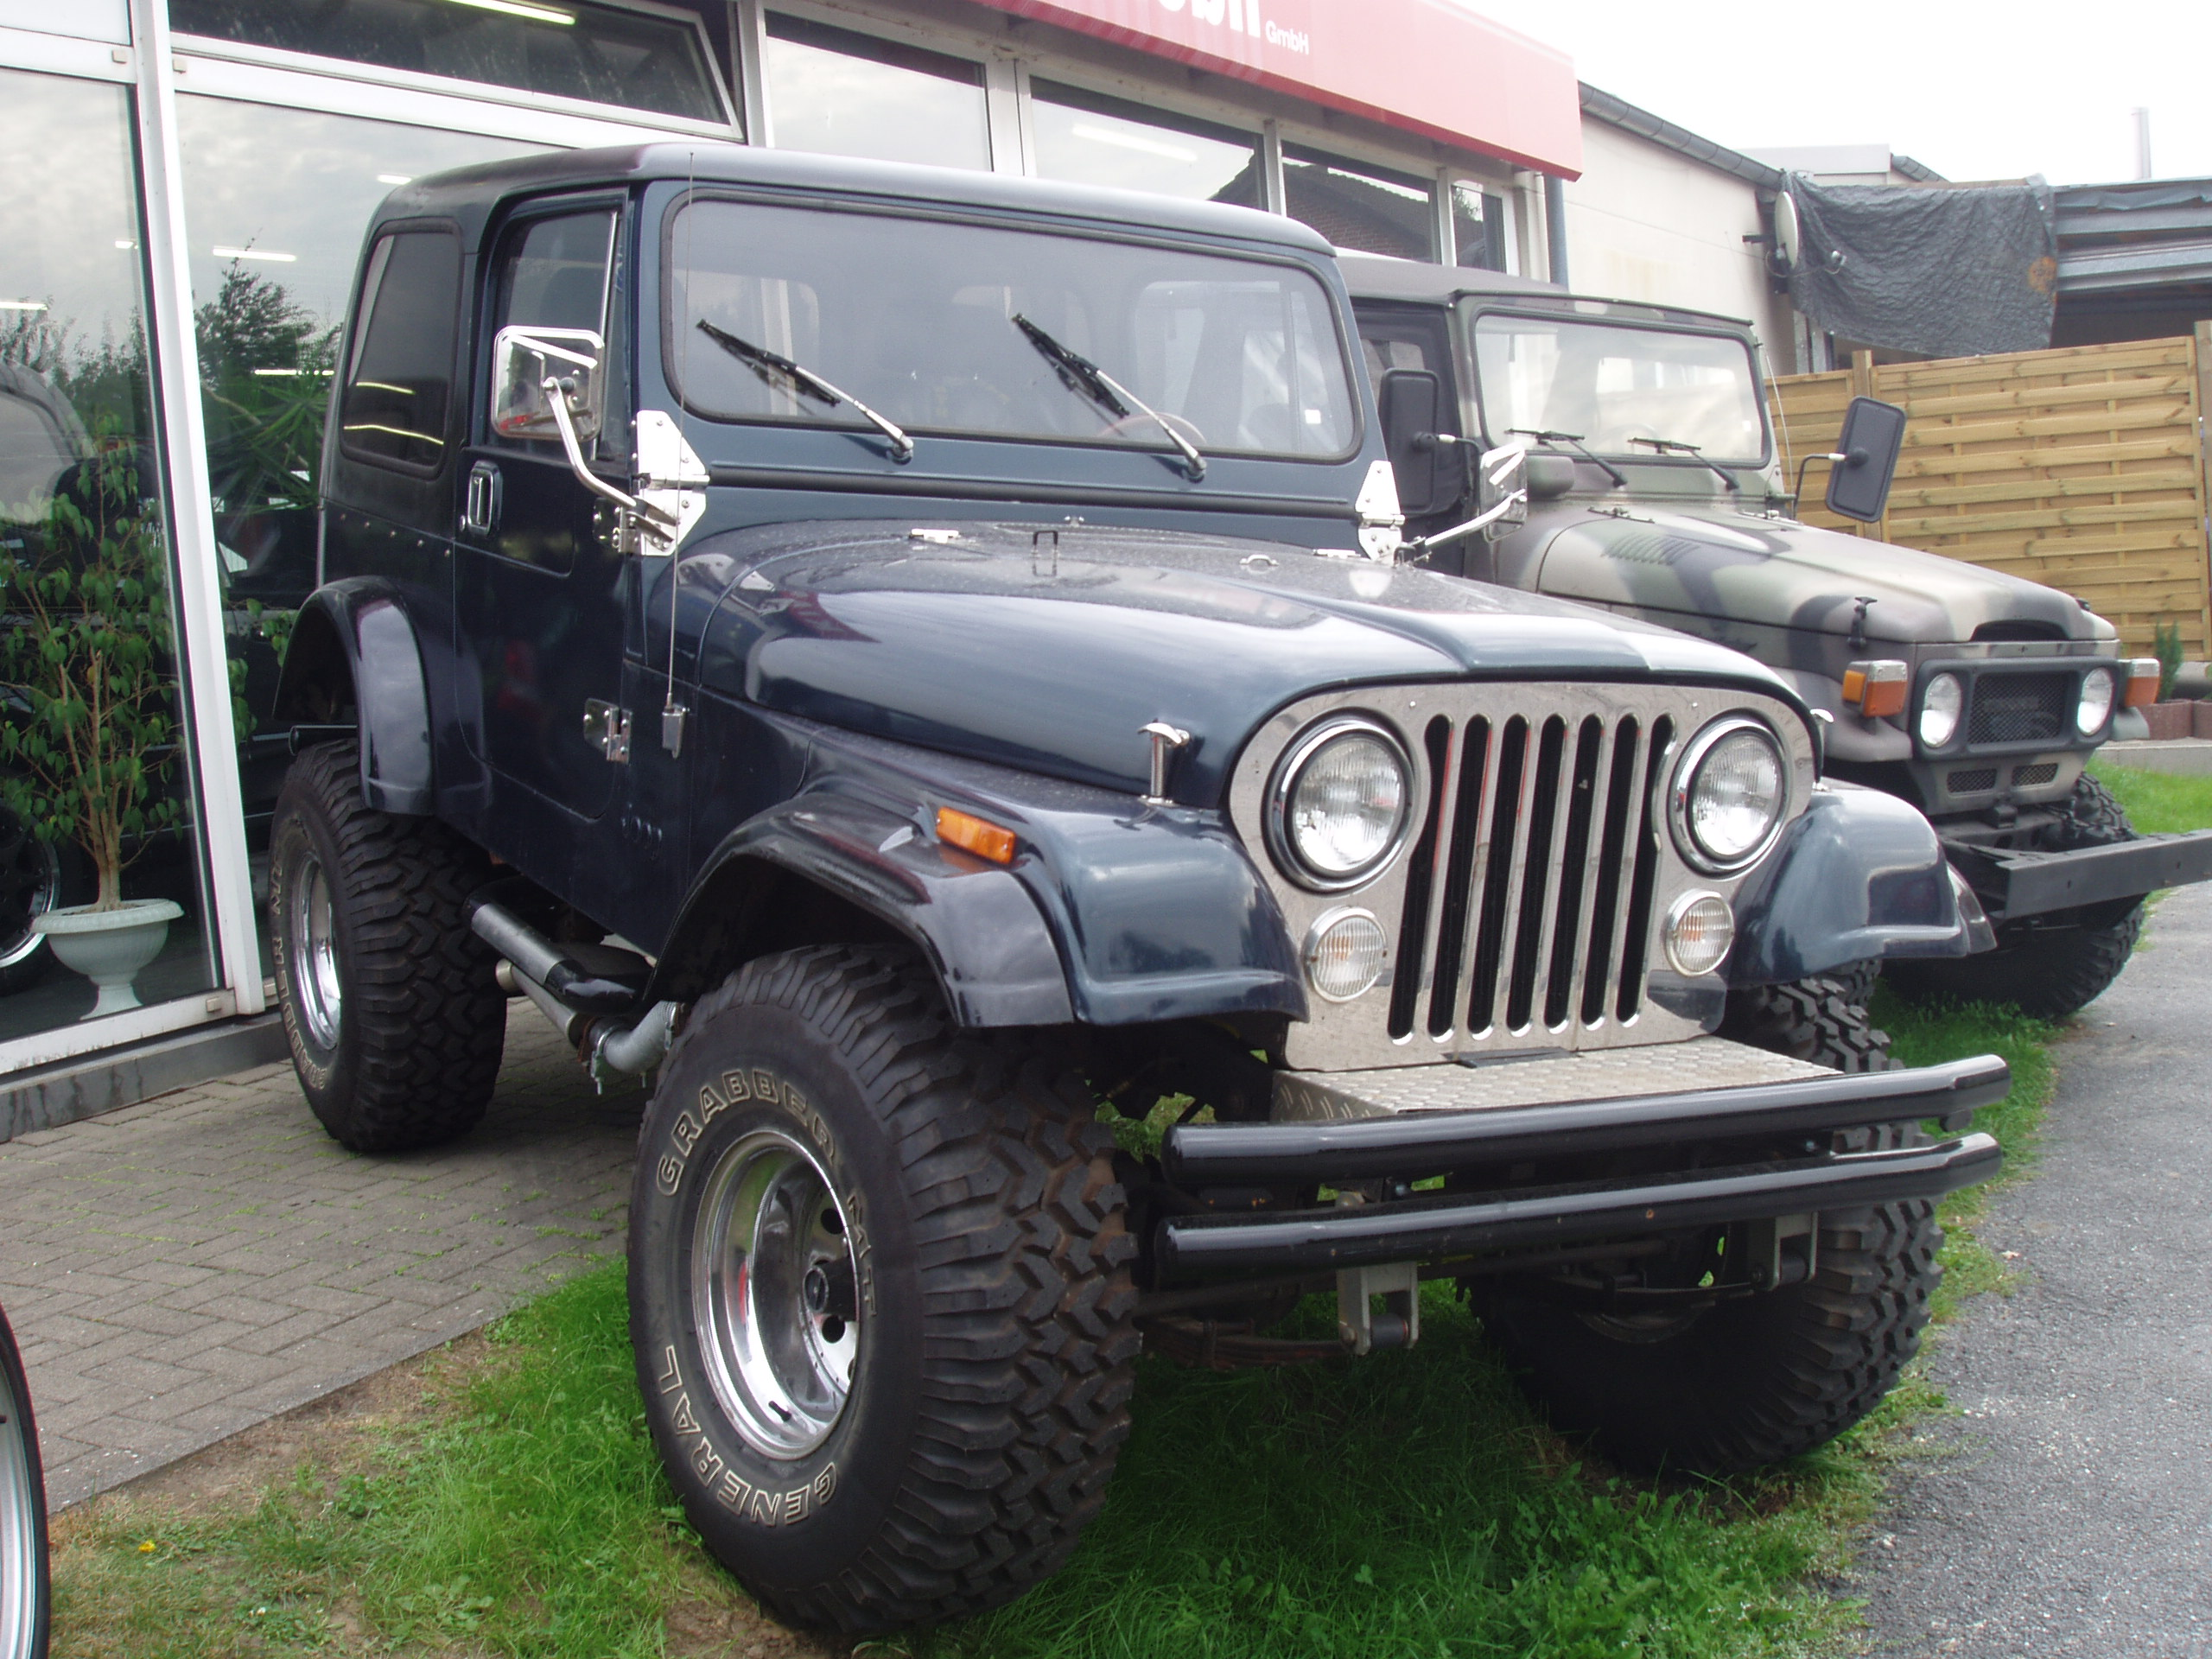 cj7s jeep photo 30594843 fanpop